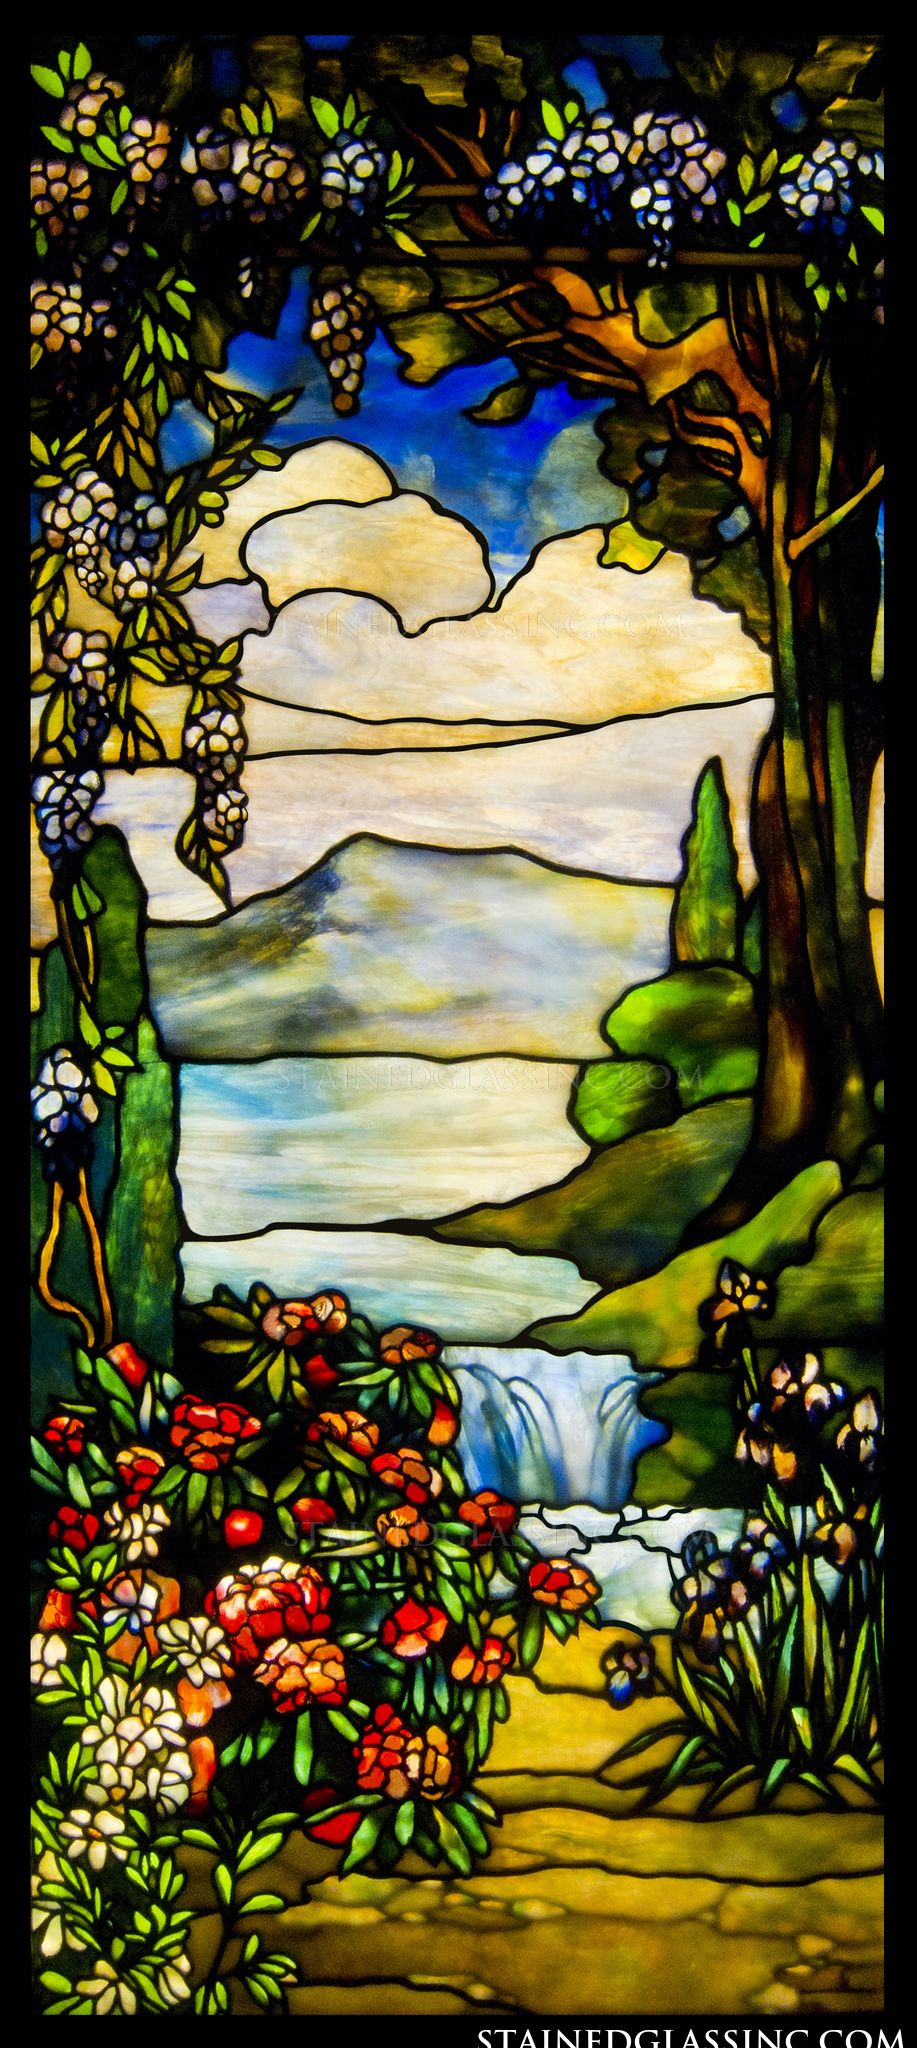 Quot Landscape With Waterfall Quot Stained Glass Window